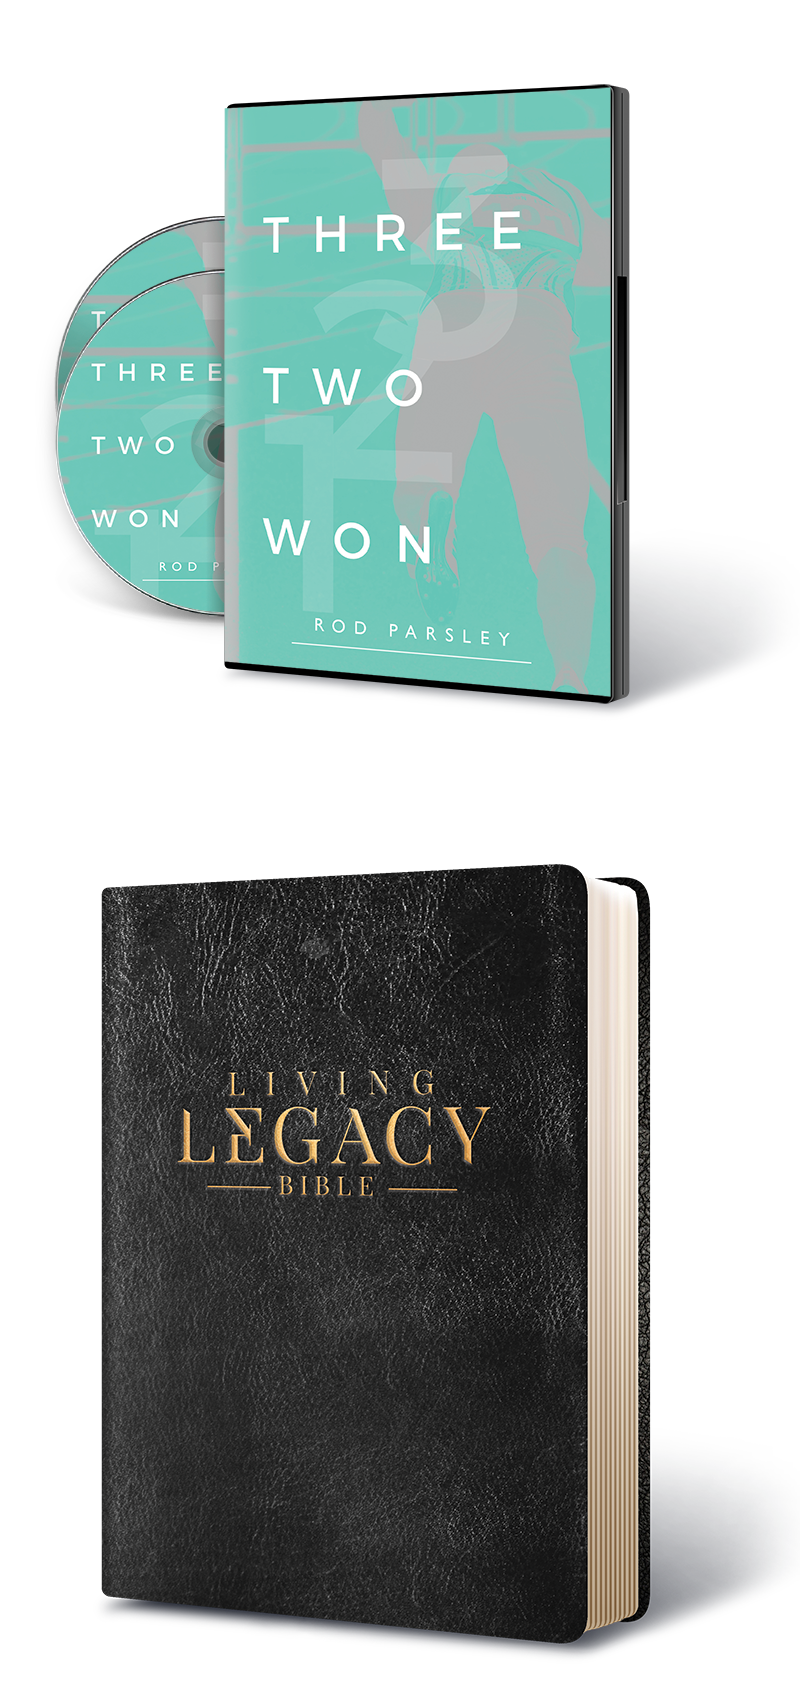 Living Legacy Bible and Three Two Won